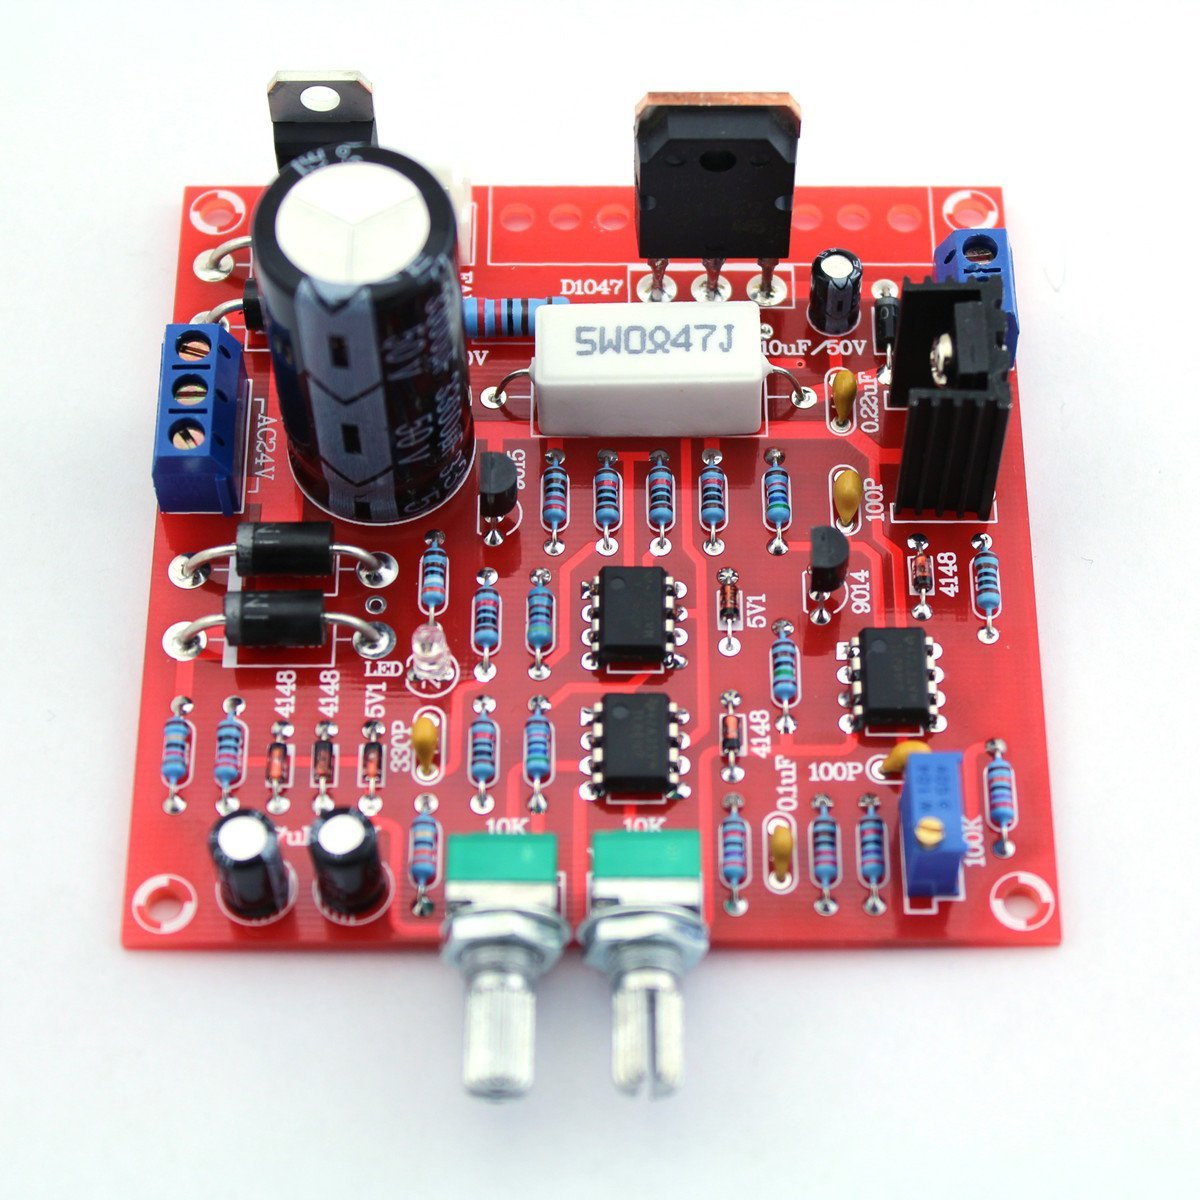 dipshop 0-30V 2mA - 3A Adjustable DC Regulated Power Supply DIY Kit Short Circuit Curren